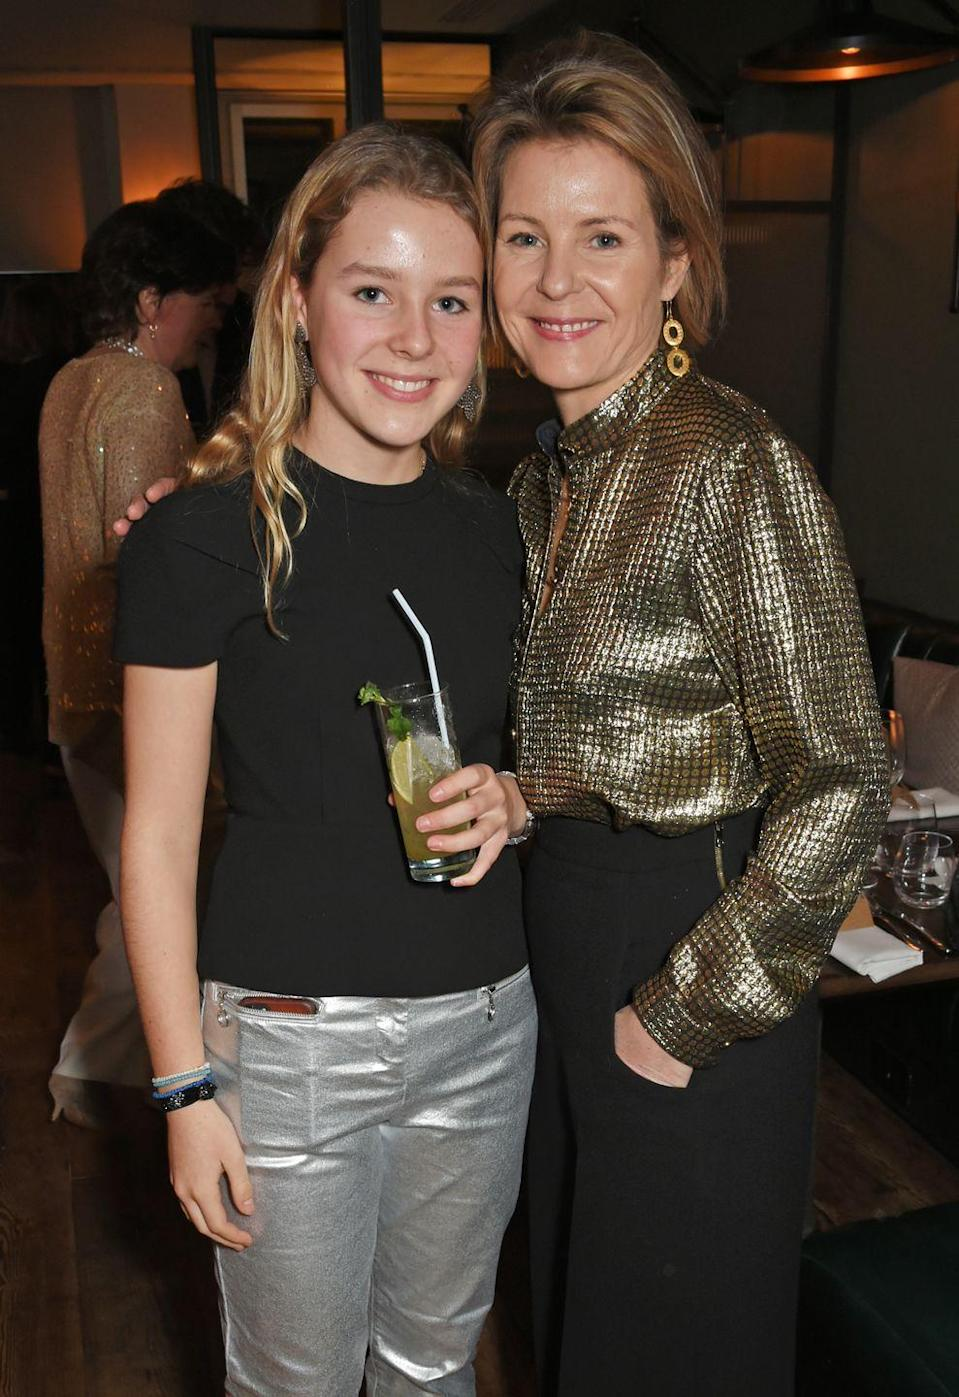 """<p>Lady Margarita (pictured left, with her mother Serena) is David's second child and Princess Margaret's only granddaughter. Lady Margarita was <a href=""""https://www.popsugar.com/celebrity/Royal-Wedding-Bridesmaid-Margarita-Armstrong-Jones-44610095"""" rel=""""nofollow noopener"""" target=""""_blank"""" data-ylk=""""slk:one of Kate Middleton's bridesmaids"""" class=""""link rapid-noclick-resp"""">one of Kate Middleton's bridesmaids</a> and sat next to Kate's sister, Pippa Middleton, in the carriage after the wedding ceremony.</p>"""